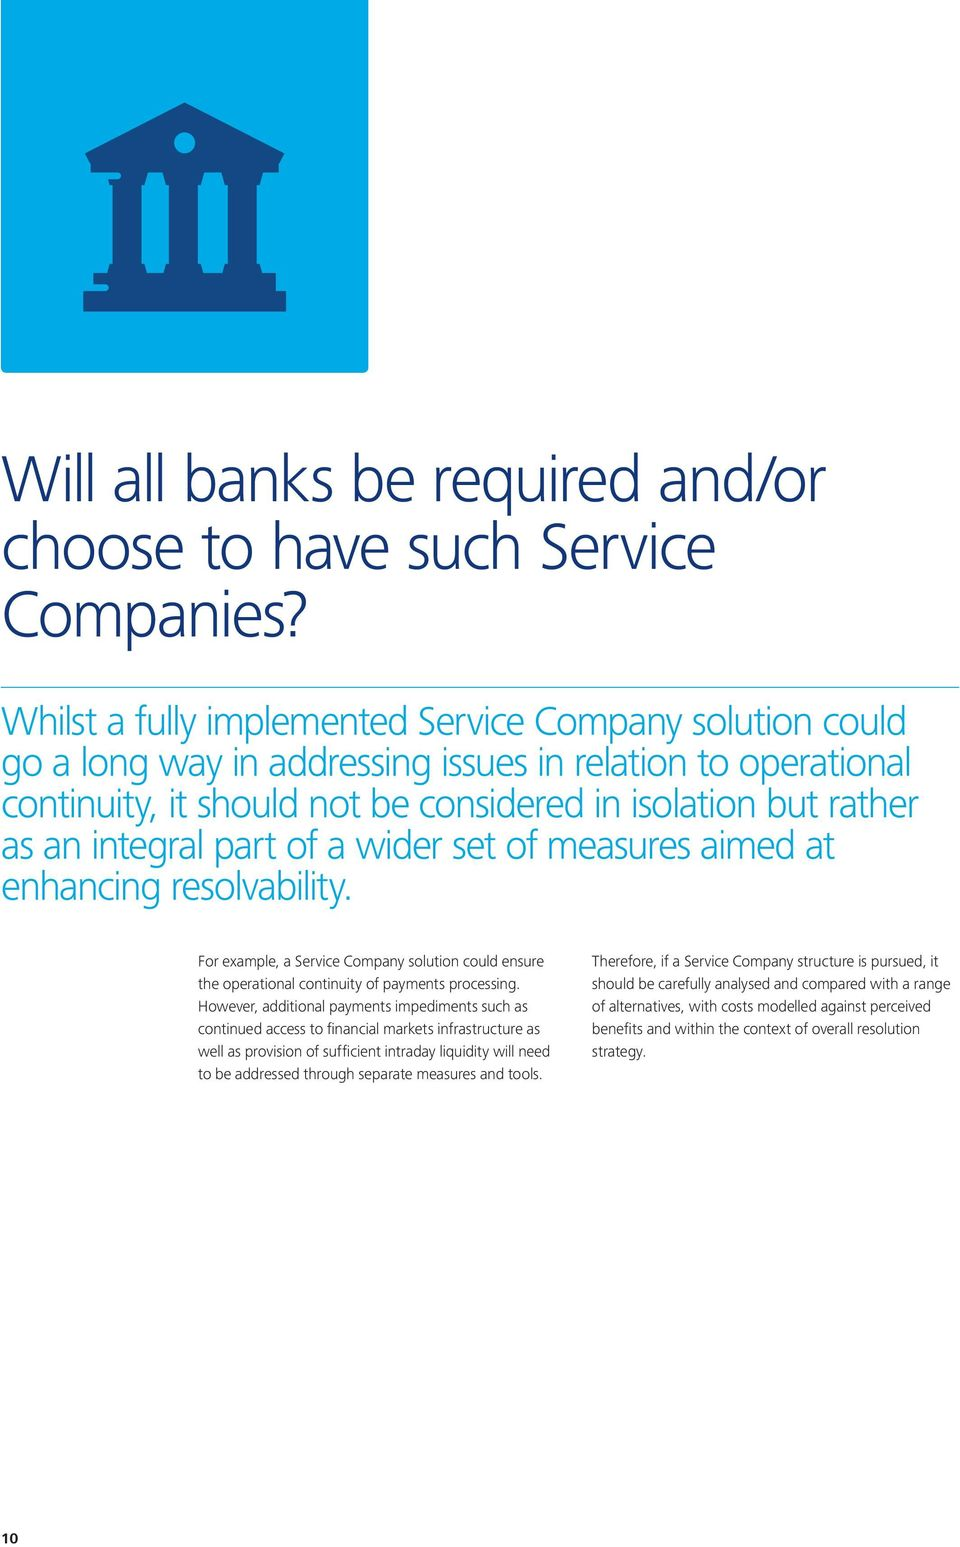 part of a wider set of measures aimed at enhancing resolvability. For example, a Service Company solution could ensure the operational continuity of payments processing.